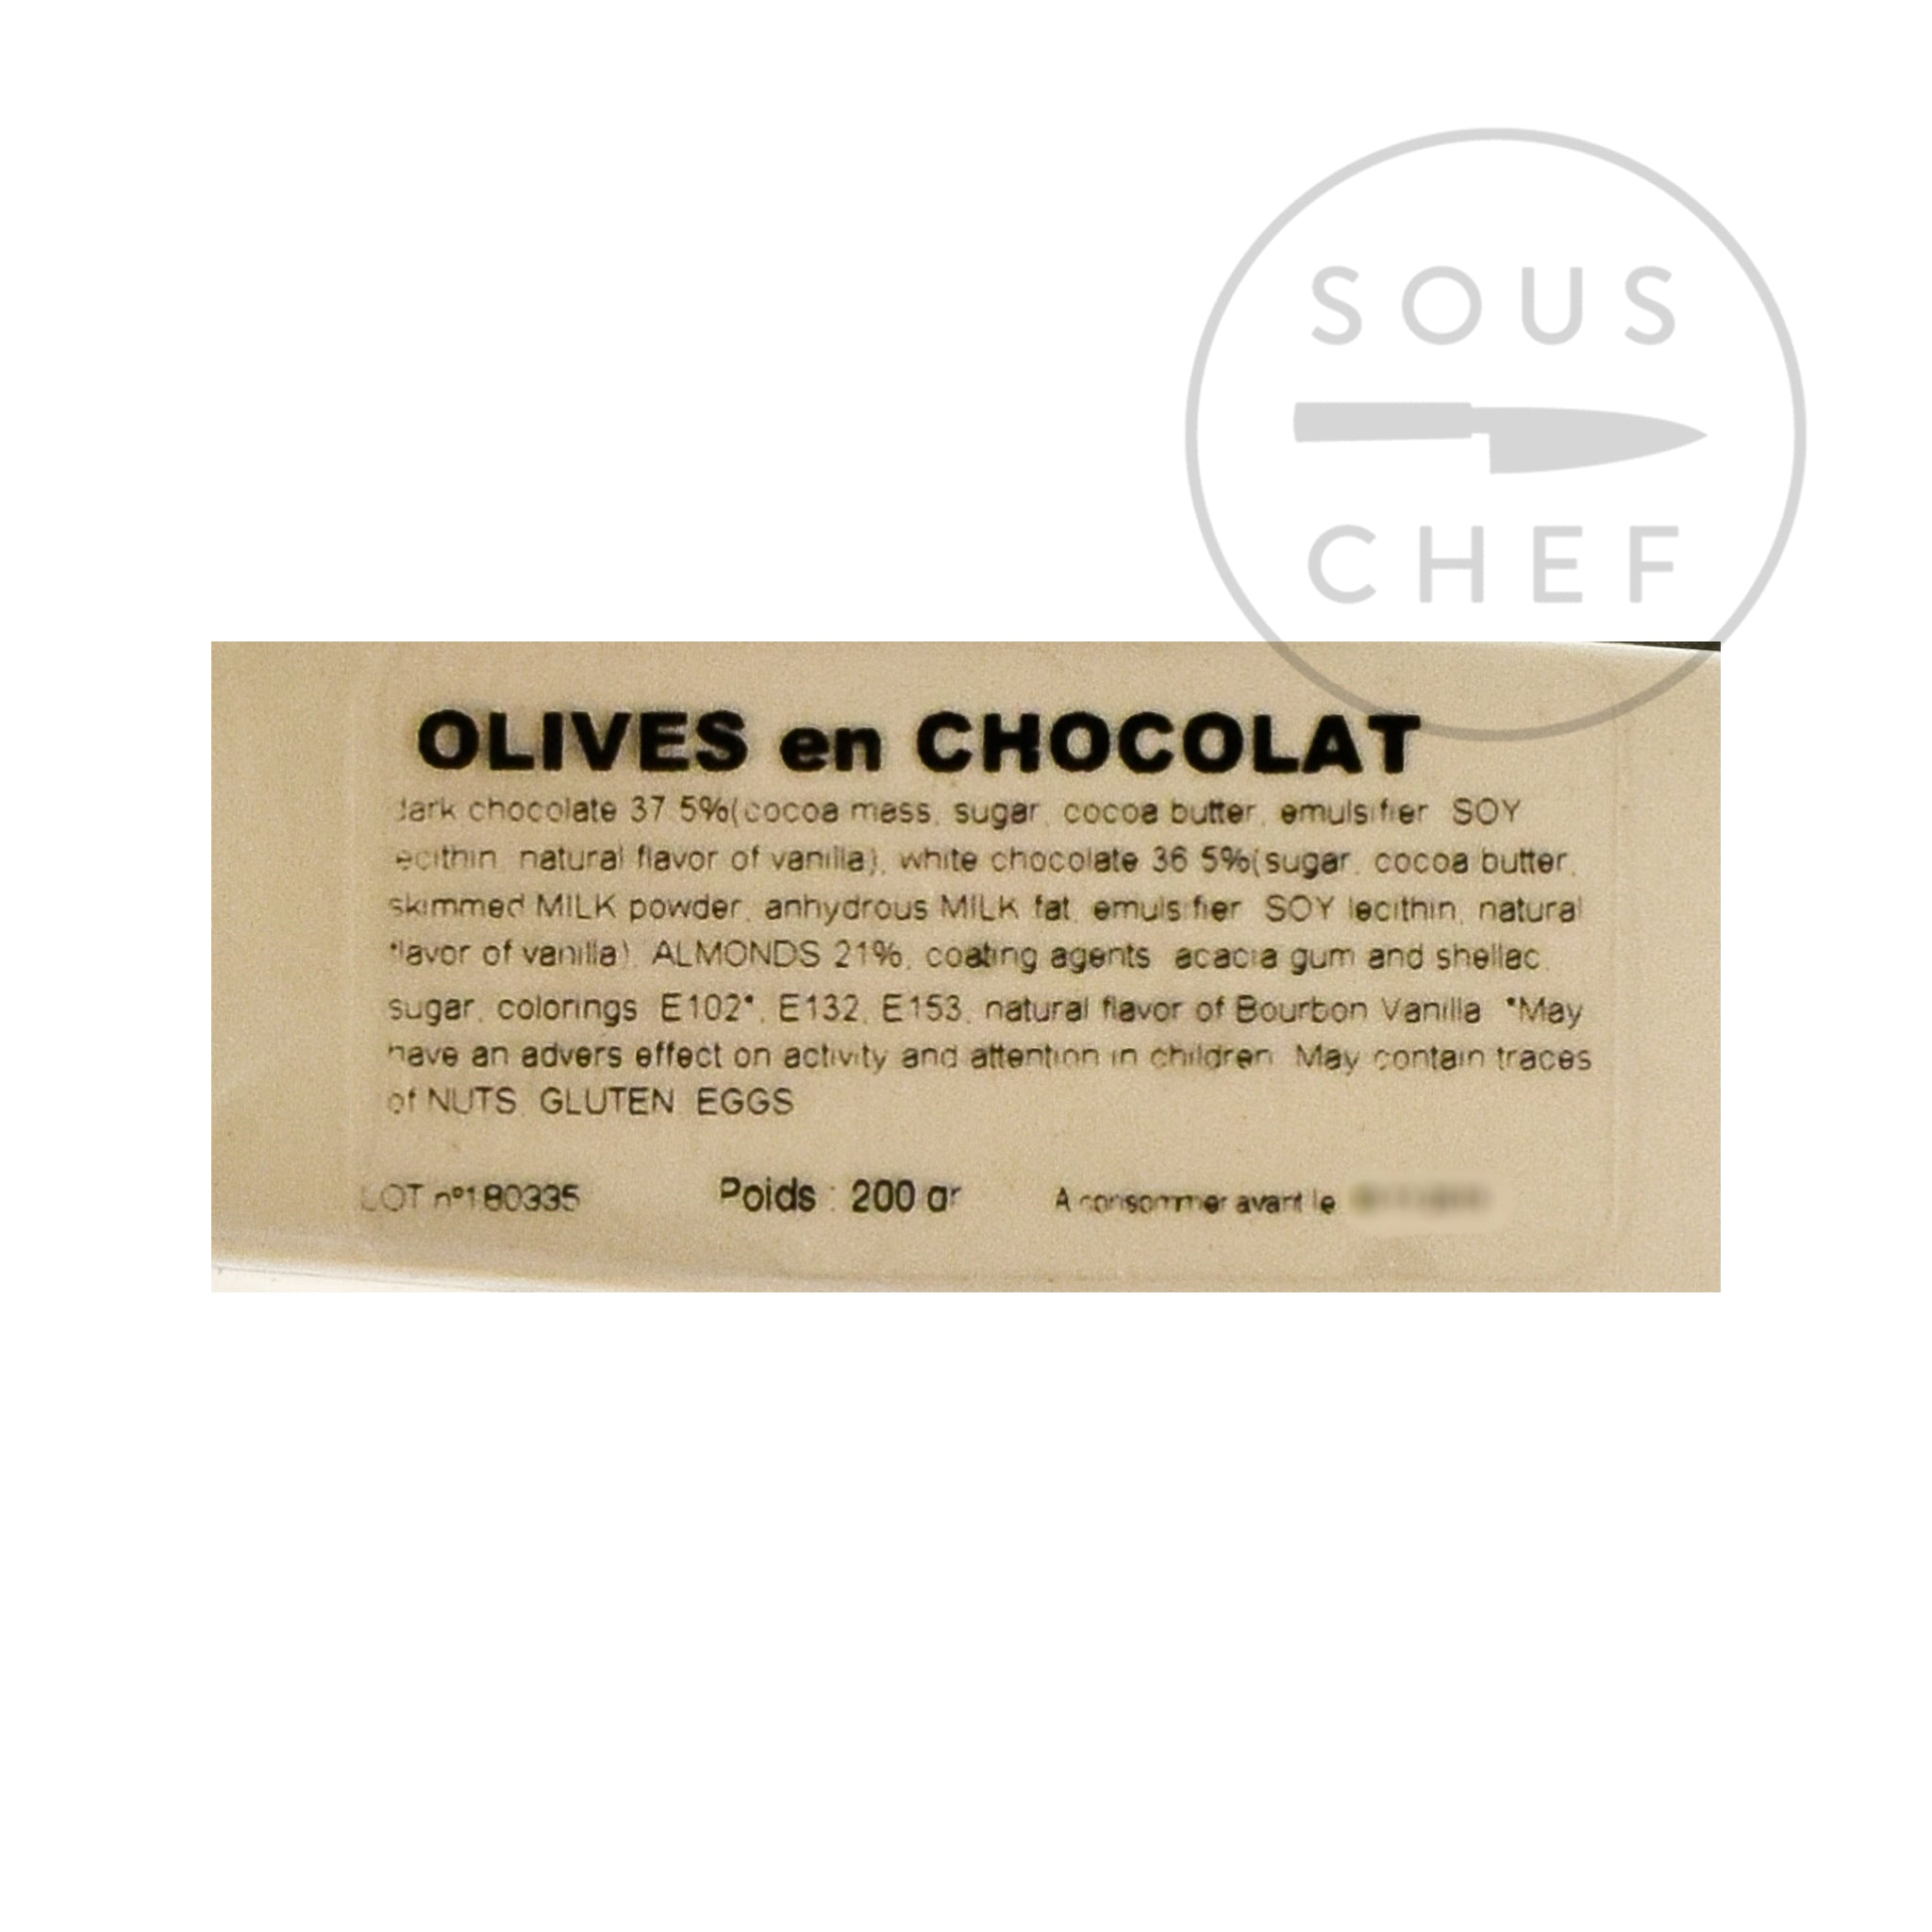 Nicolas Alziari Provence Olive-Shaped Chocolates 80g Ingredients Chocolate Bars & Confectionery French Food Ingredients Information